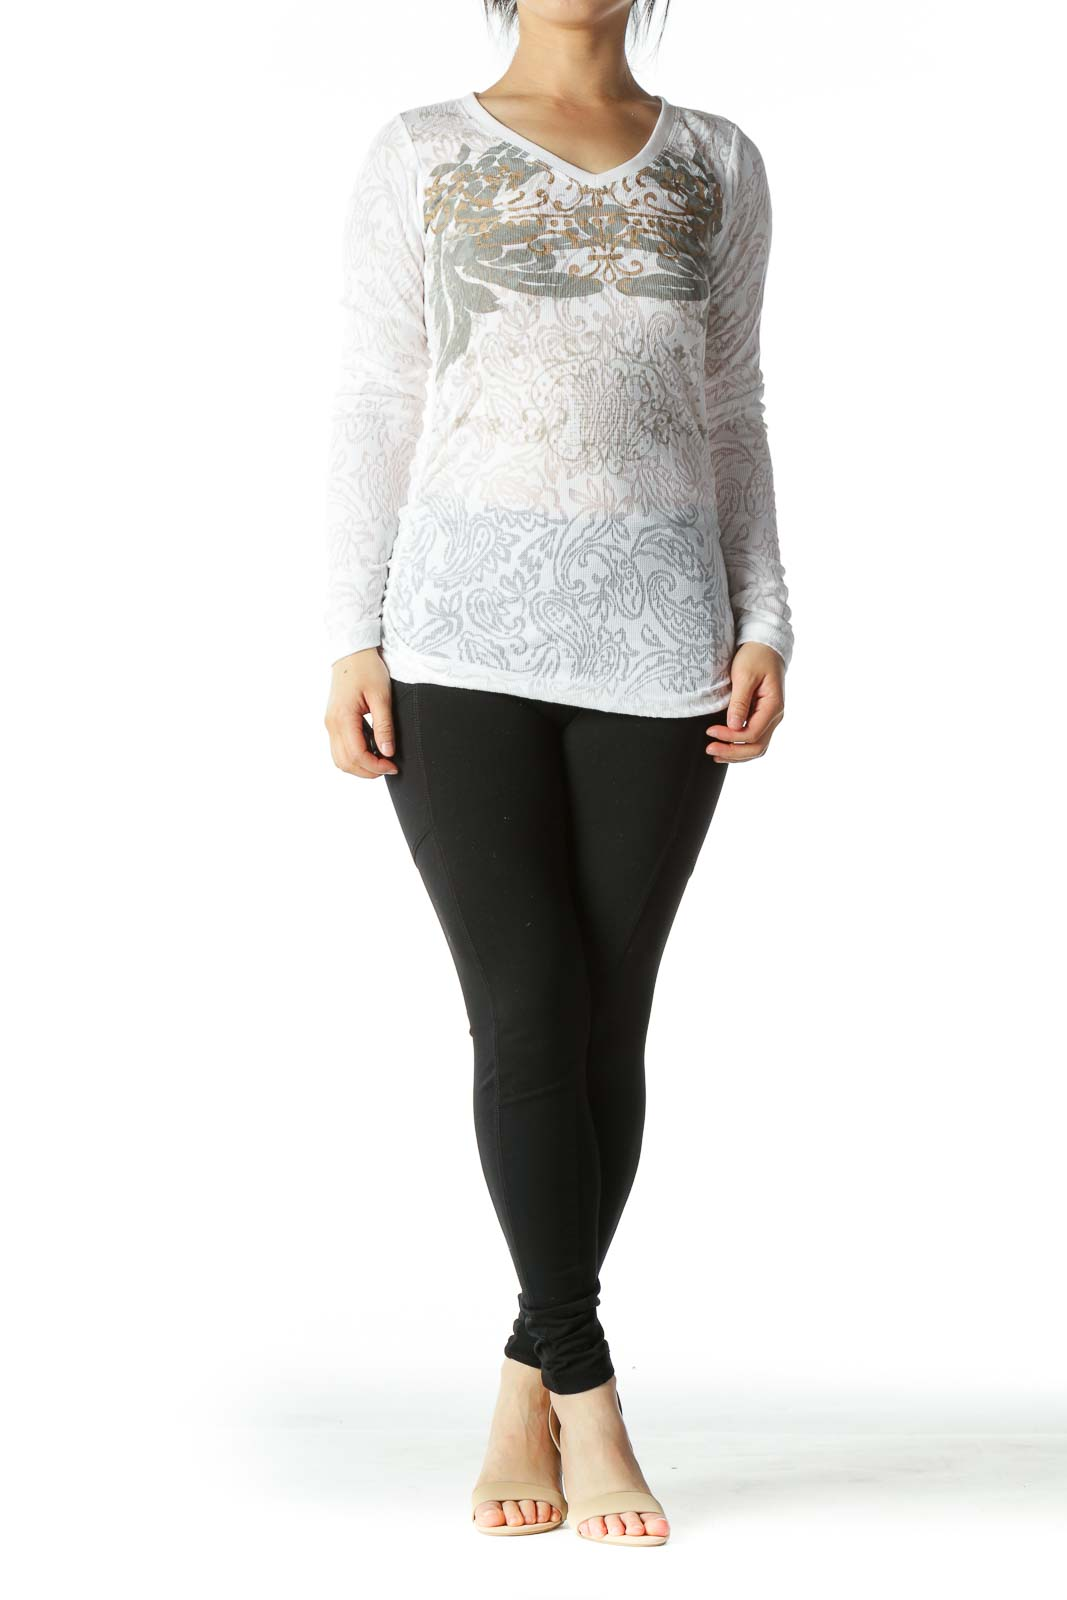 White Brown and Gray Graphic Waffle-Knit Scrunched Long-Sleeve V-Neck